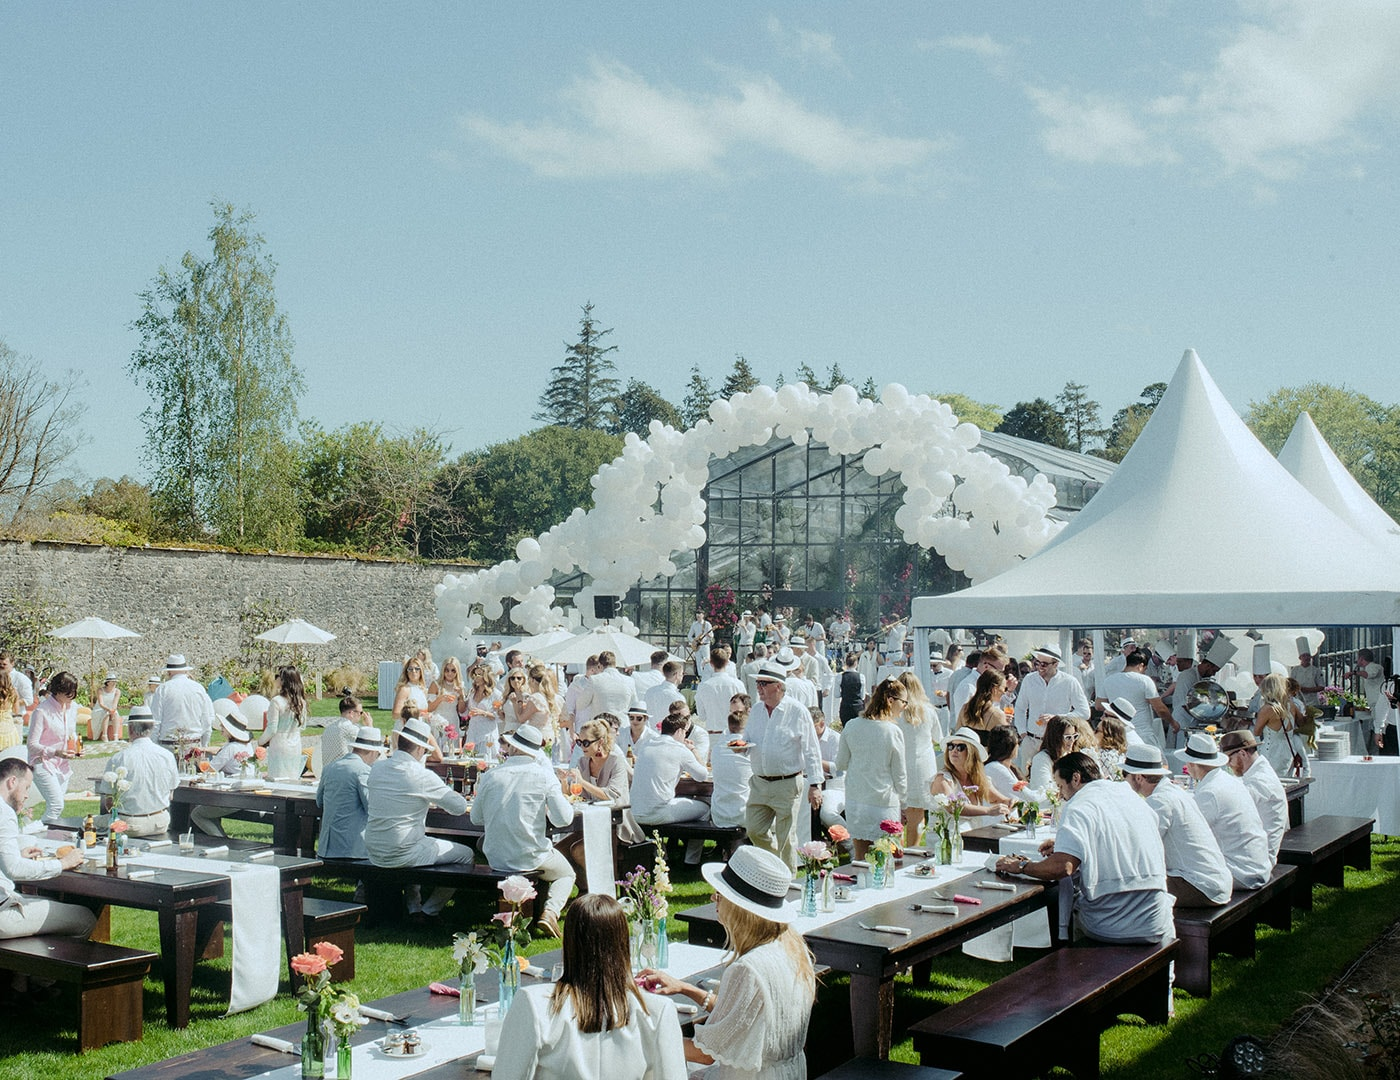 White Party, Destination Weddings Ireland, Adare Manor, Olivia Buckley International, Wedding planners in Ireland, Event Planners in Ireland